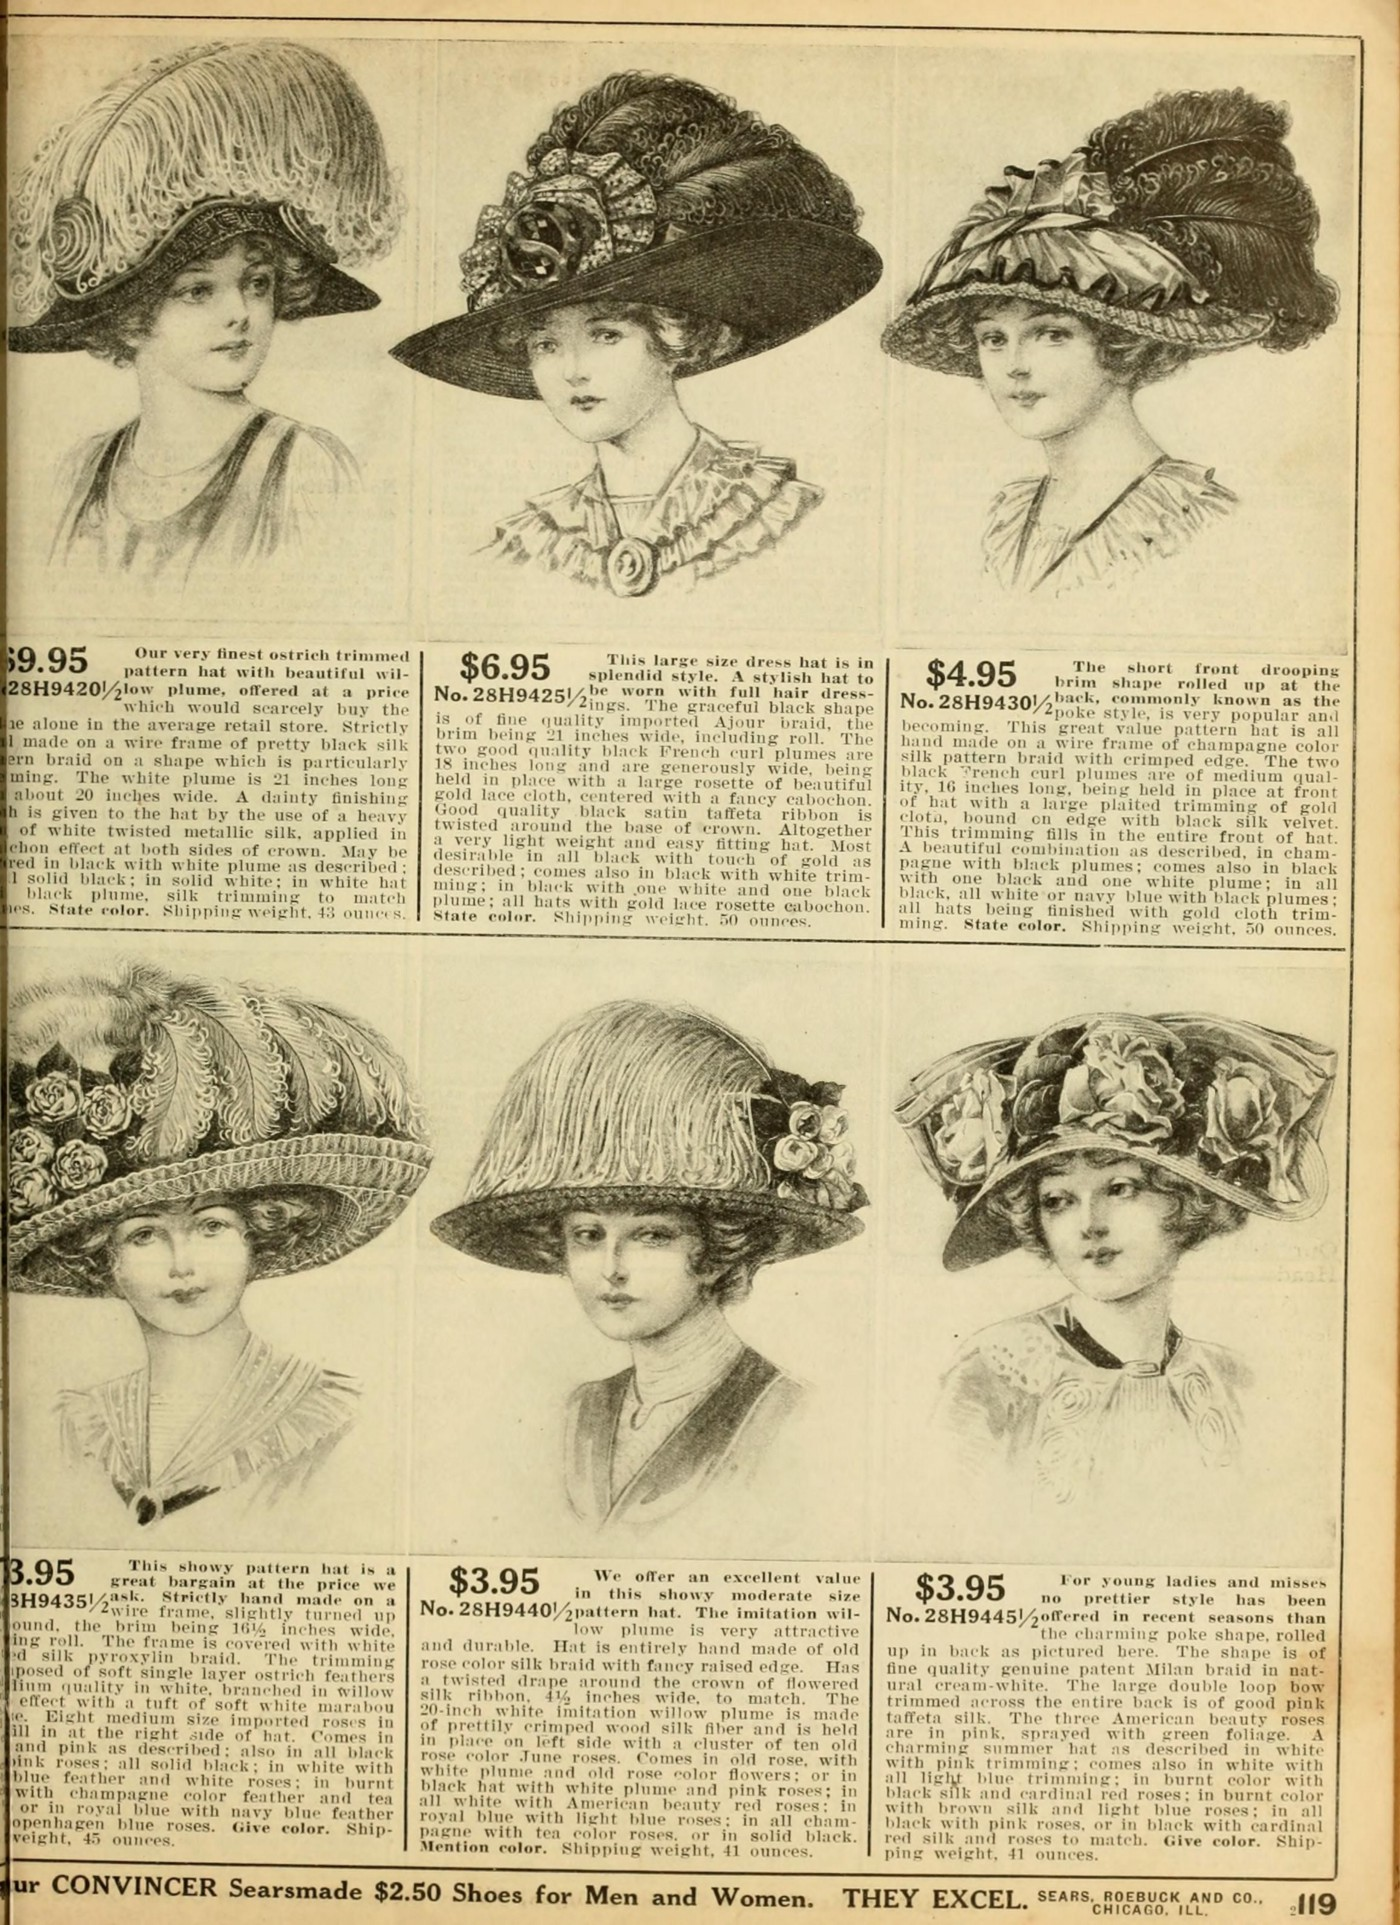 A page from the Sears Roebuck catalog, circa early 1900s, USA.